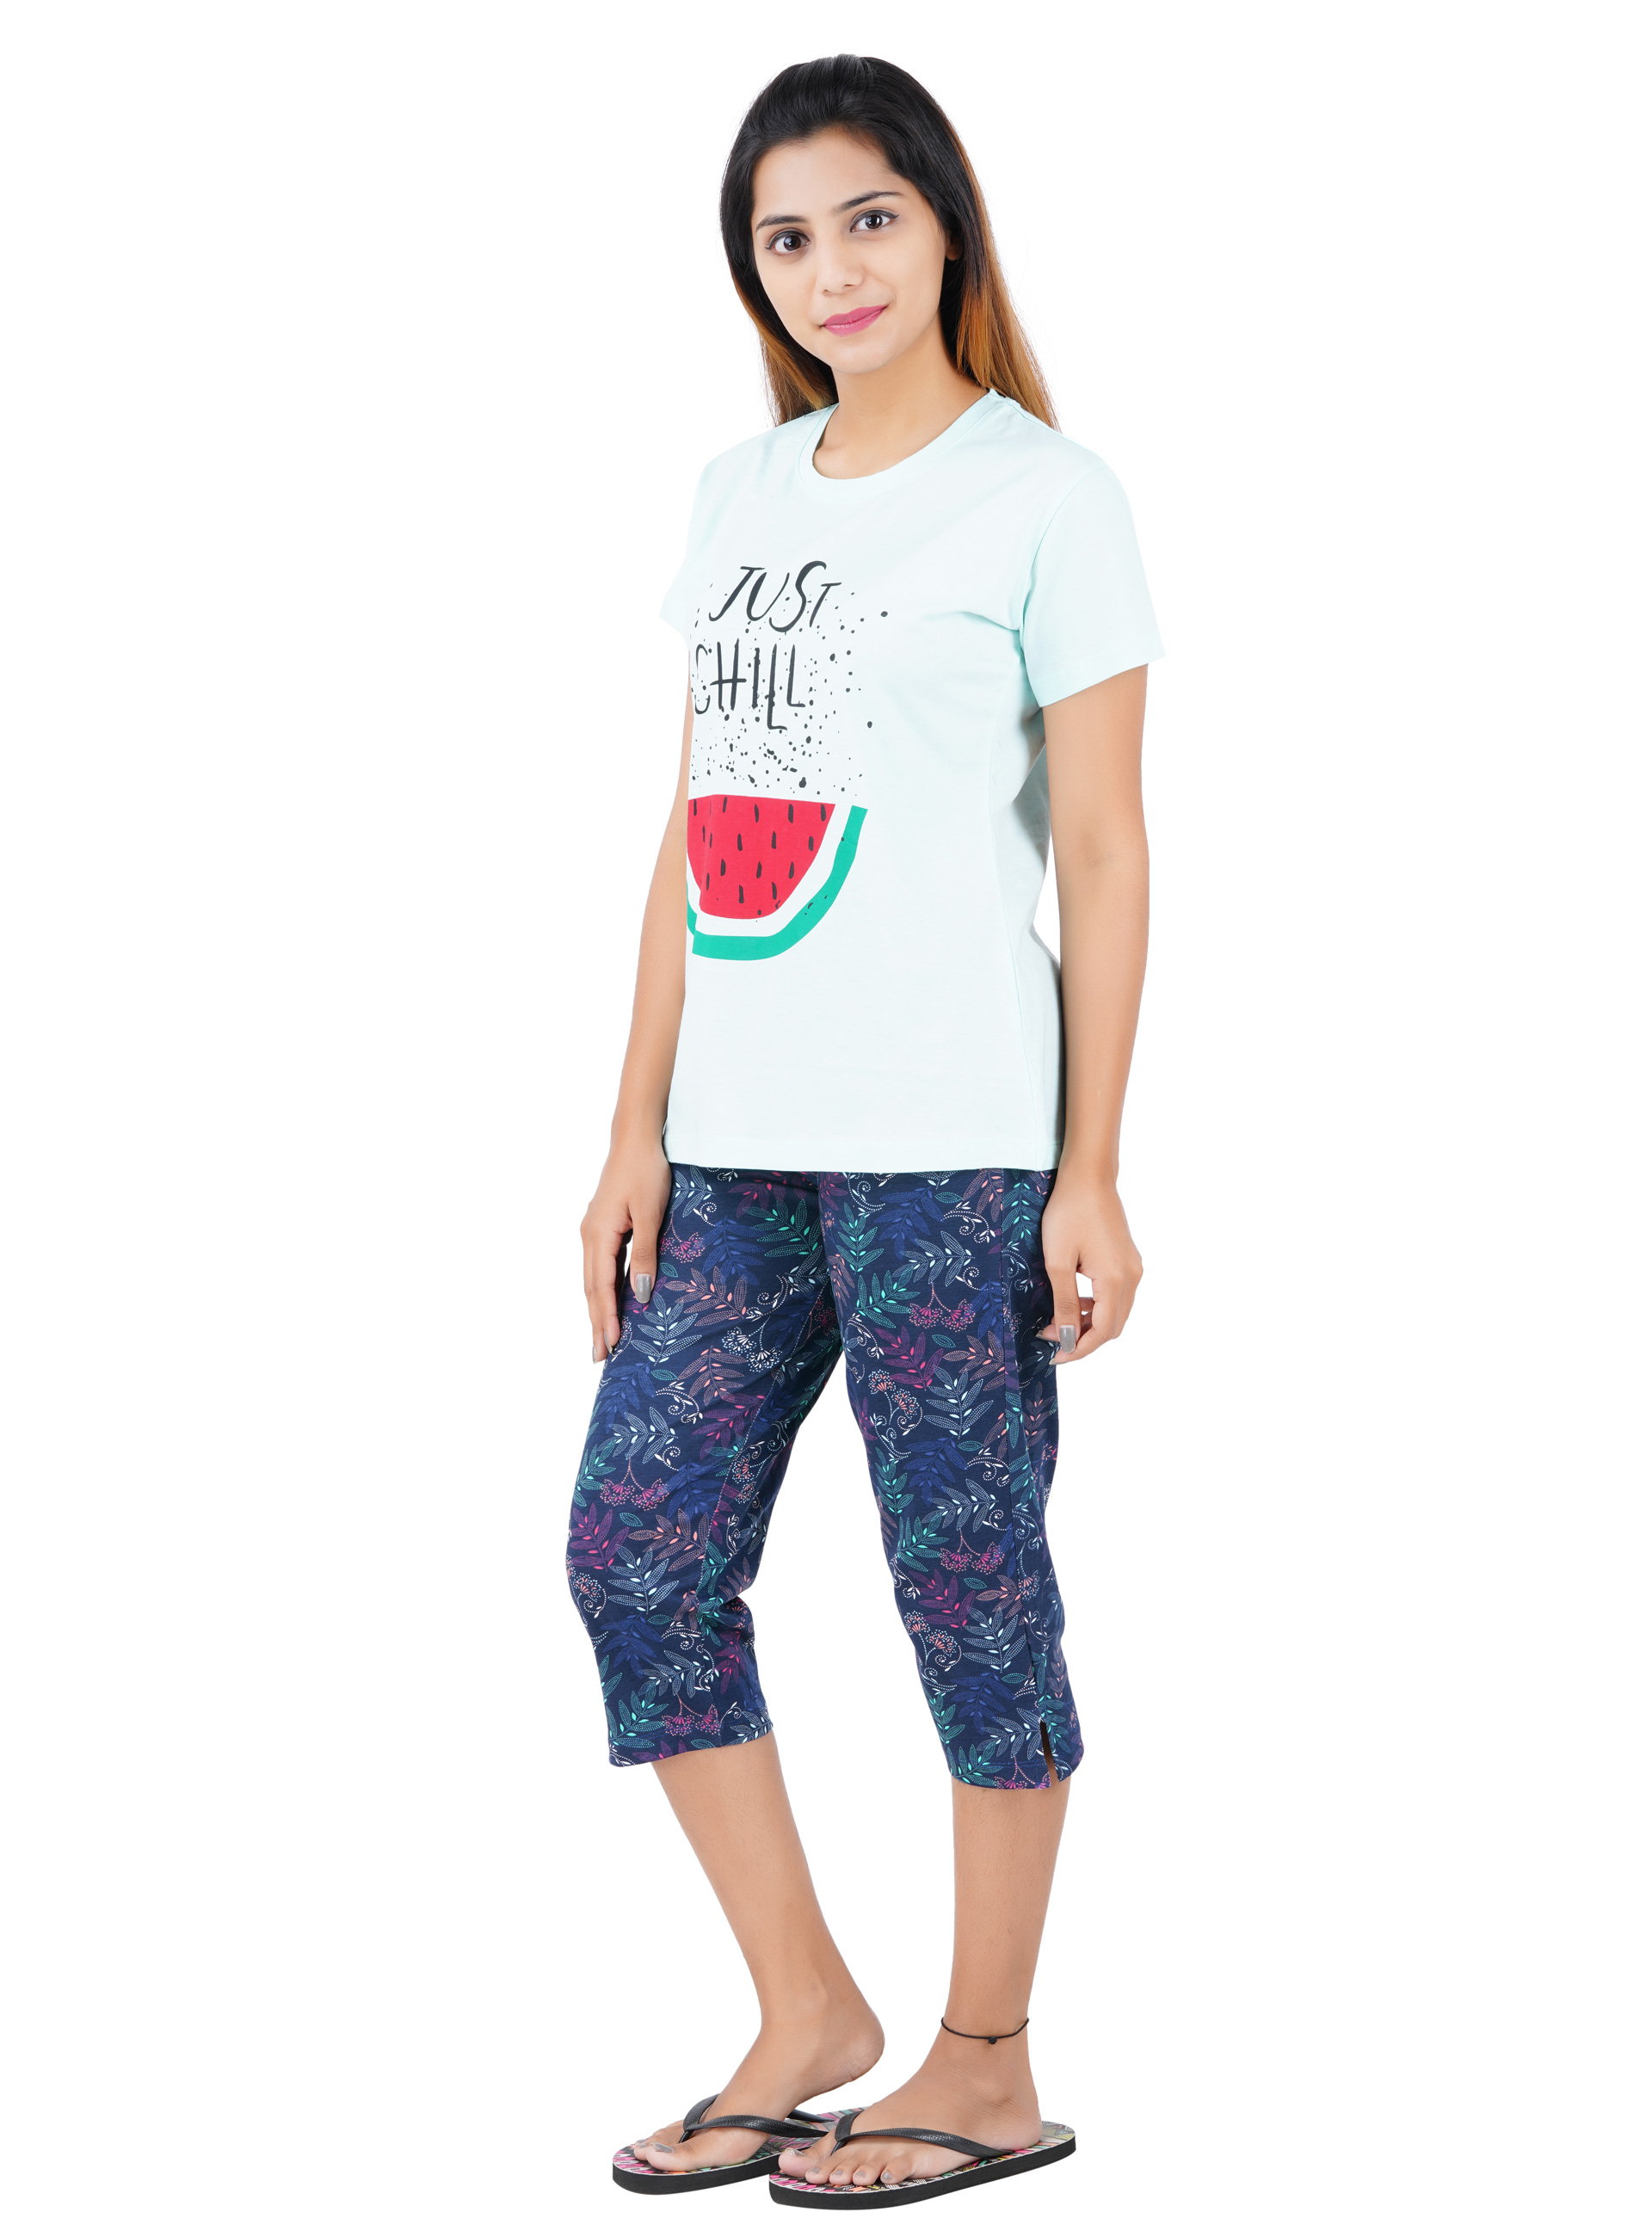 Aswati Watermelon 3/4 Full Set Capri - Just Chill